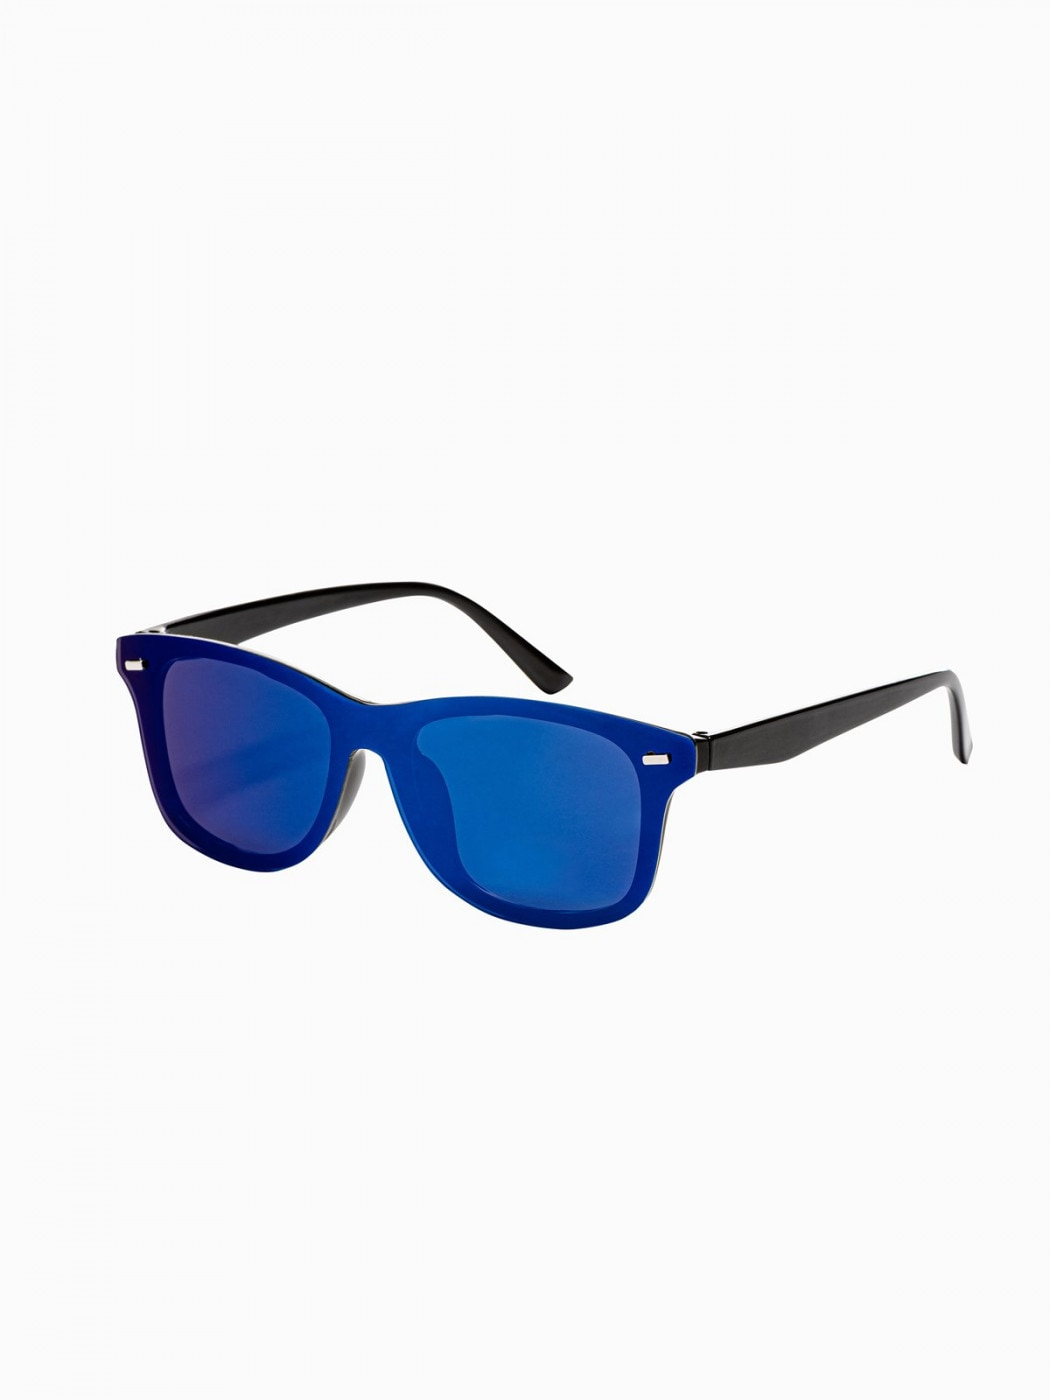 Ombre Clothing Sunglasses A279